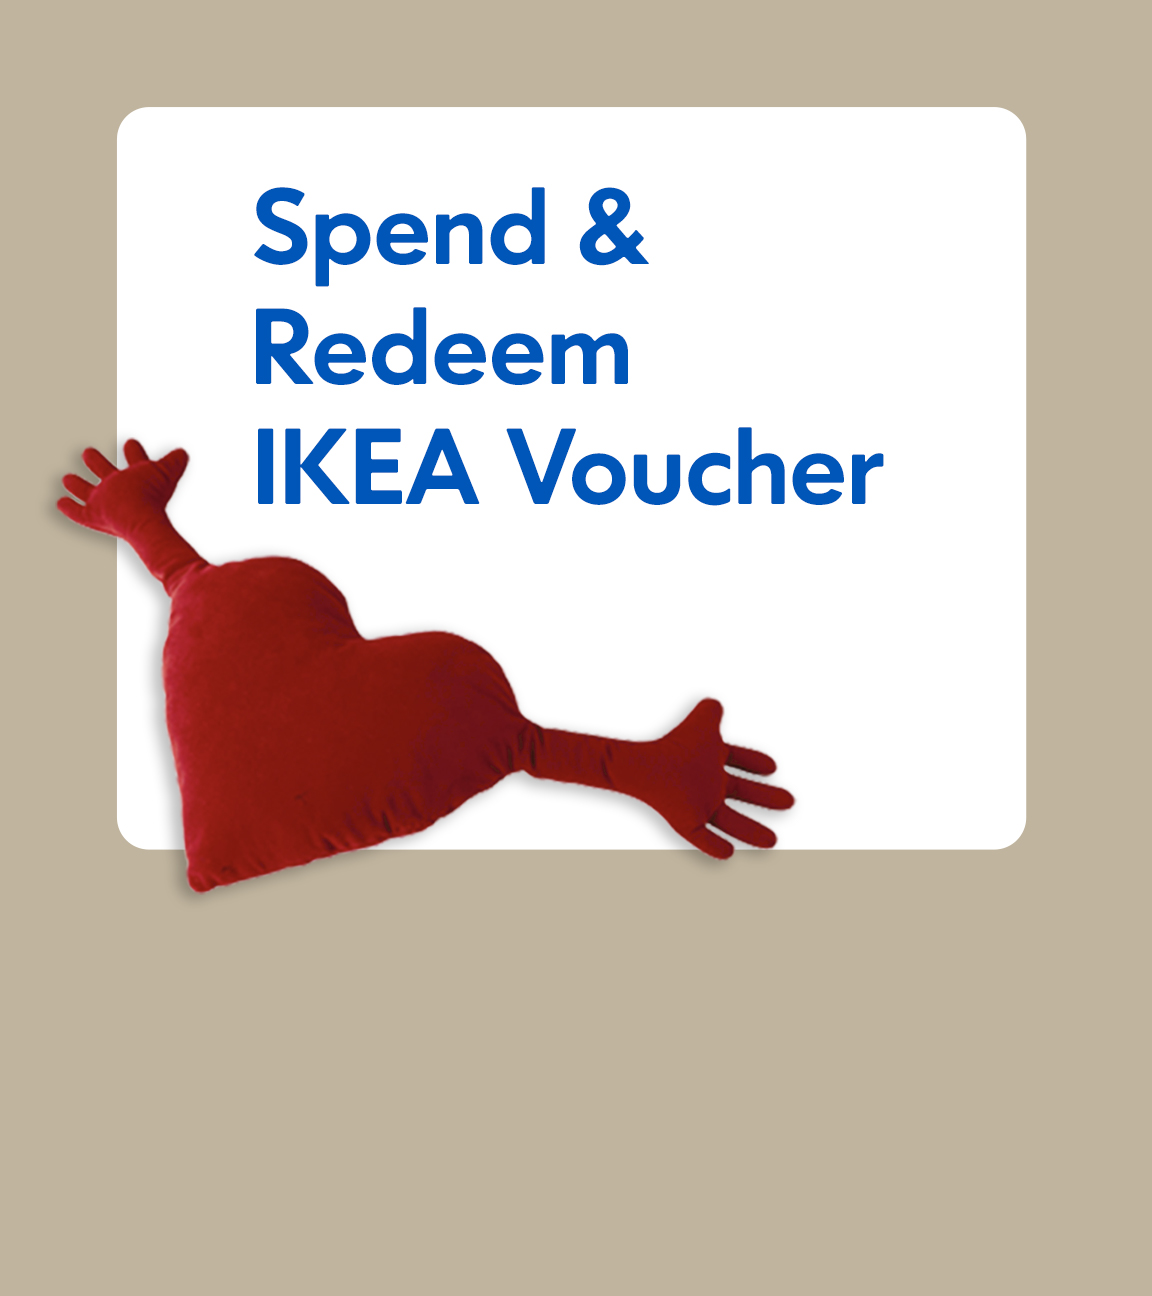 Spend & Redeem IKEA Voucher campaign